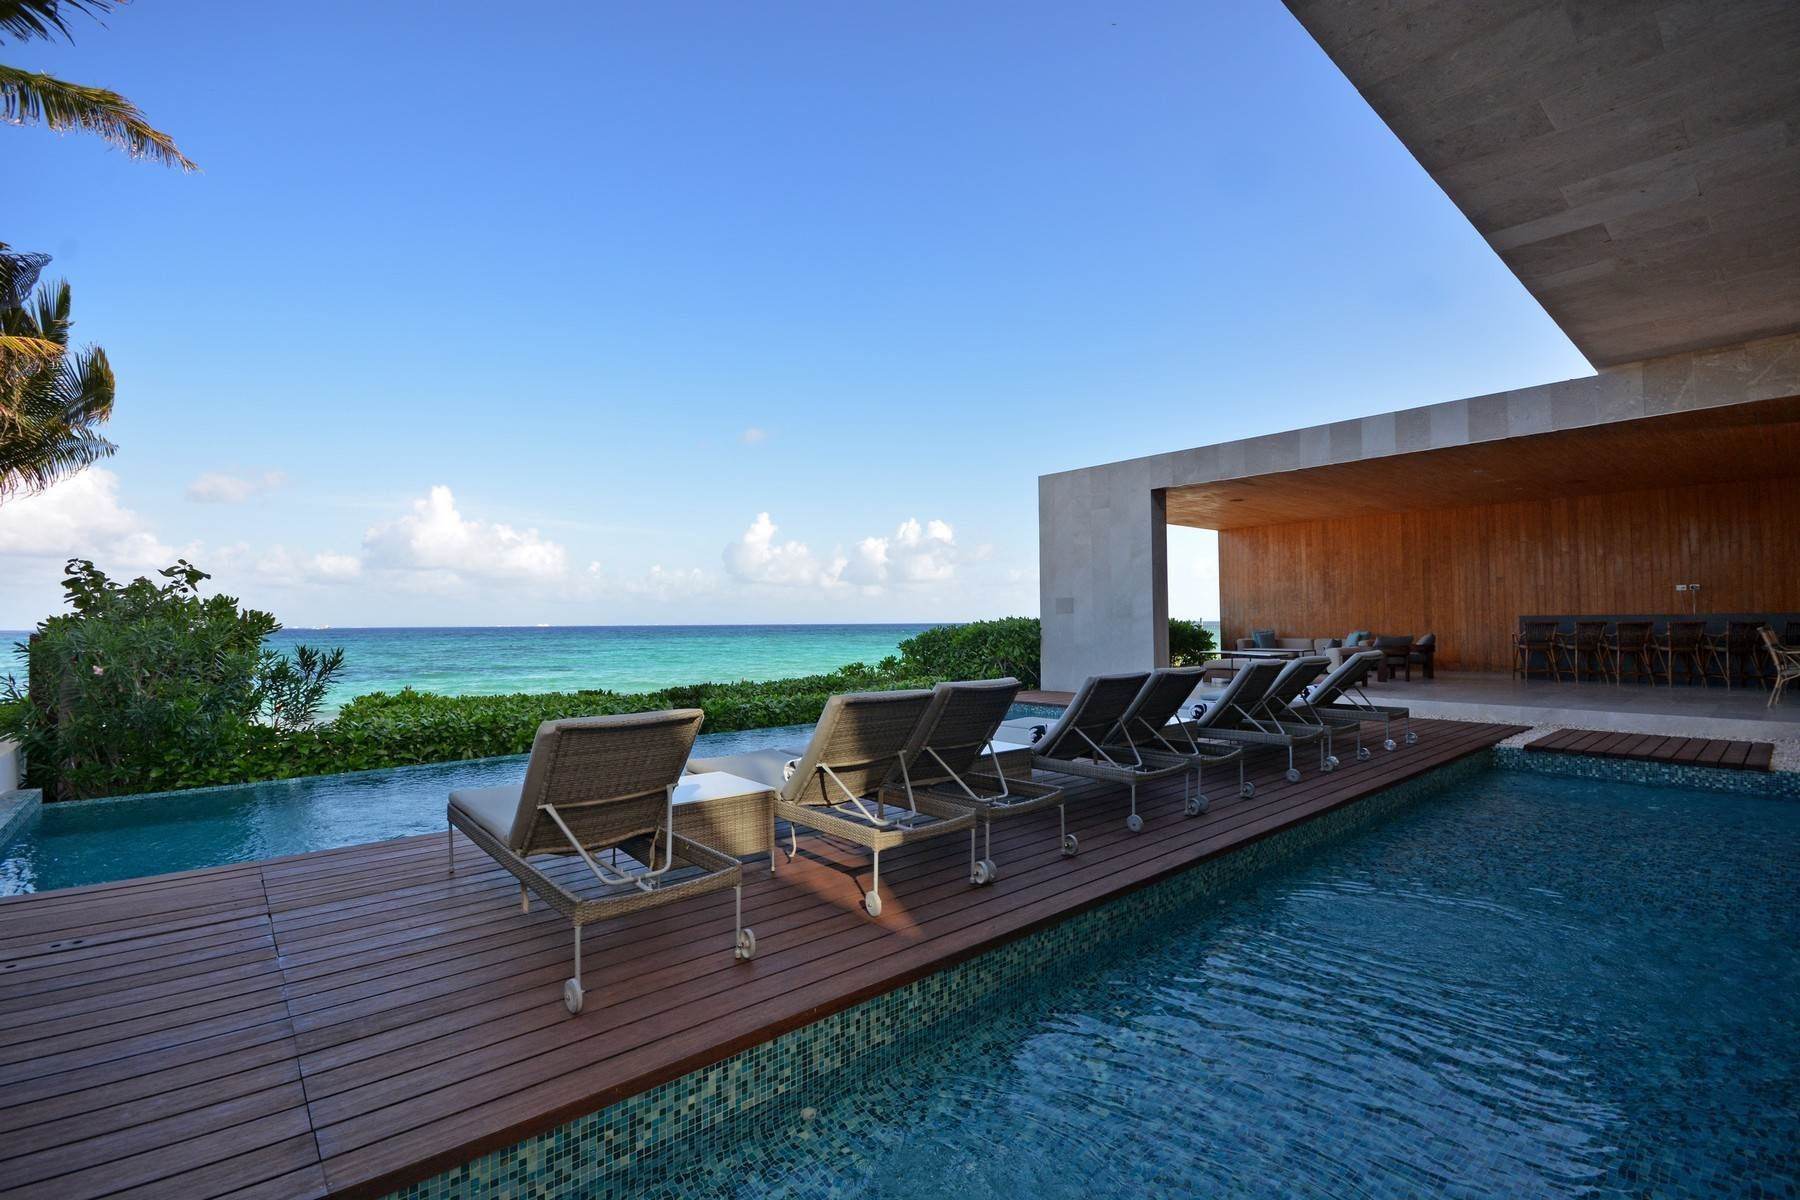 Single Family Homes for Sale at Kin Ich, luxurious beachfront residence, Bahia del Espiritu Santo Avenue Playa Del Carmen, Quintana Roo 77713 Mexico